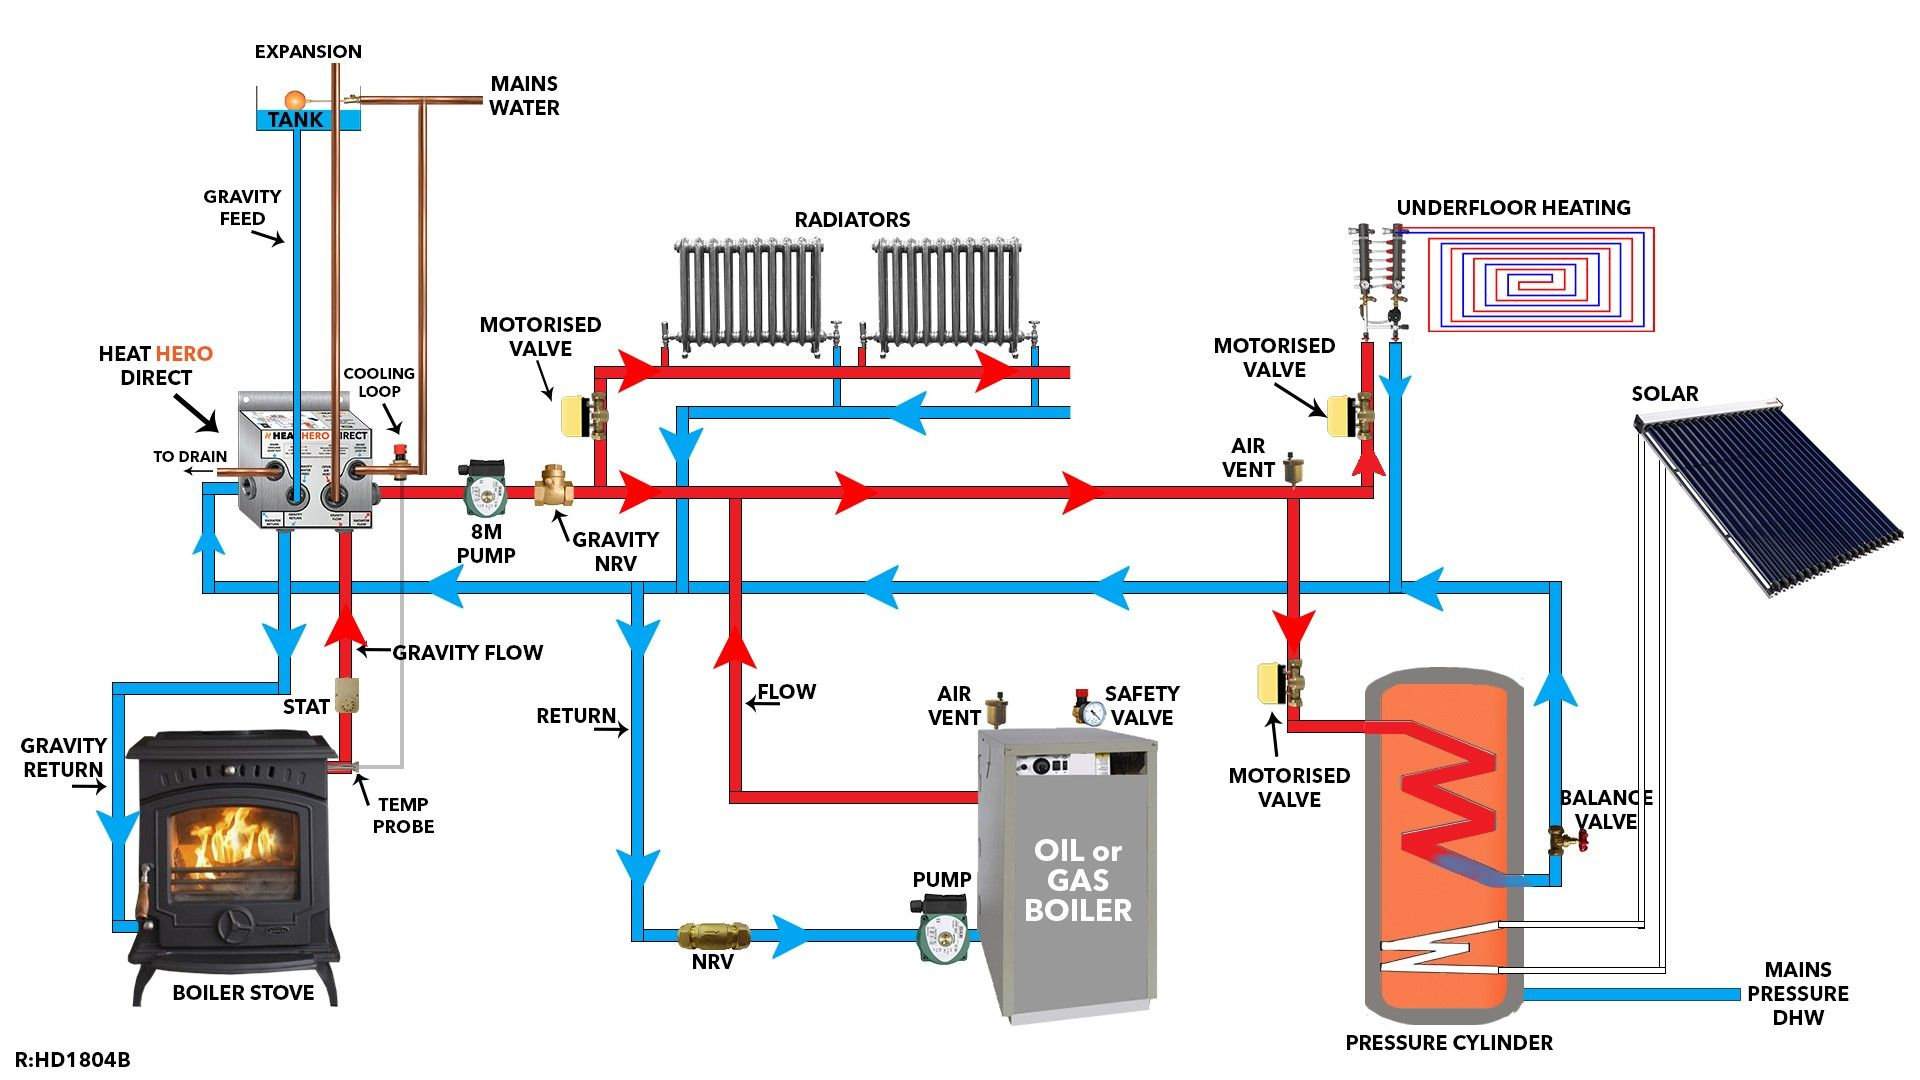 New Wiring Diagram For Solid Fuel Central Heating System Diagram Diagramtemplate Diagramsample Heating Systems Central Heating System Central Heating